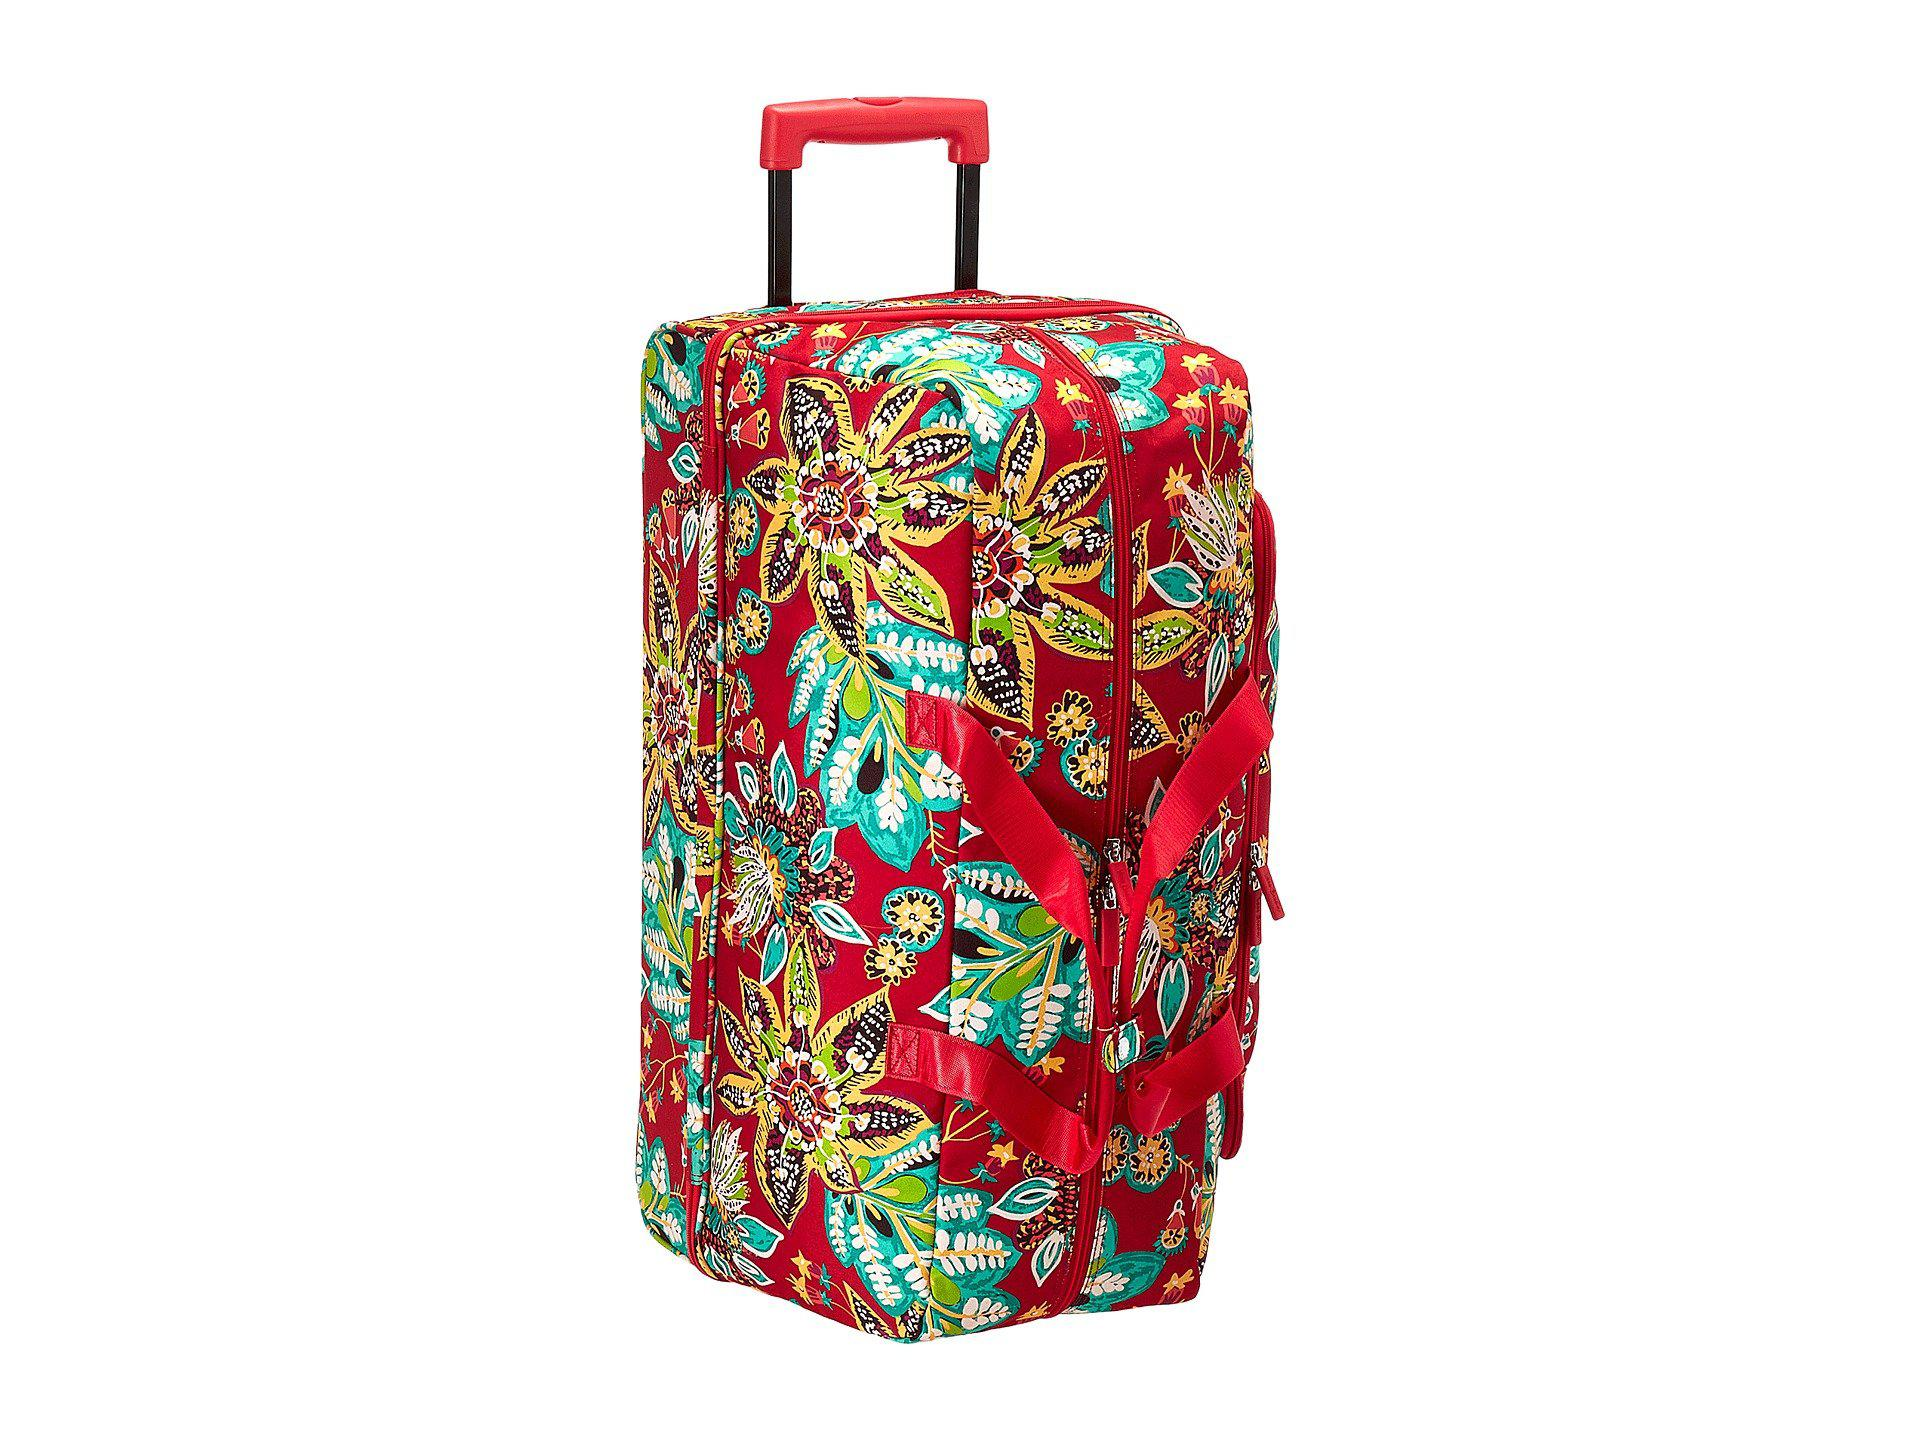 5db08c6a47c Lyst - Vera Bradley Luggage Lighten Up Large Wheeled Duffel in Red ...